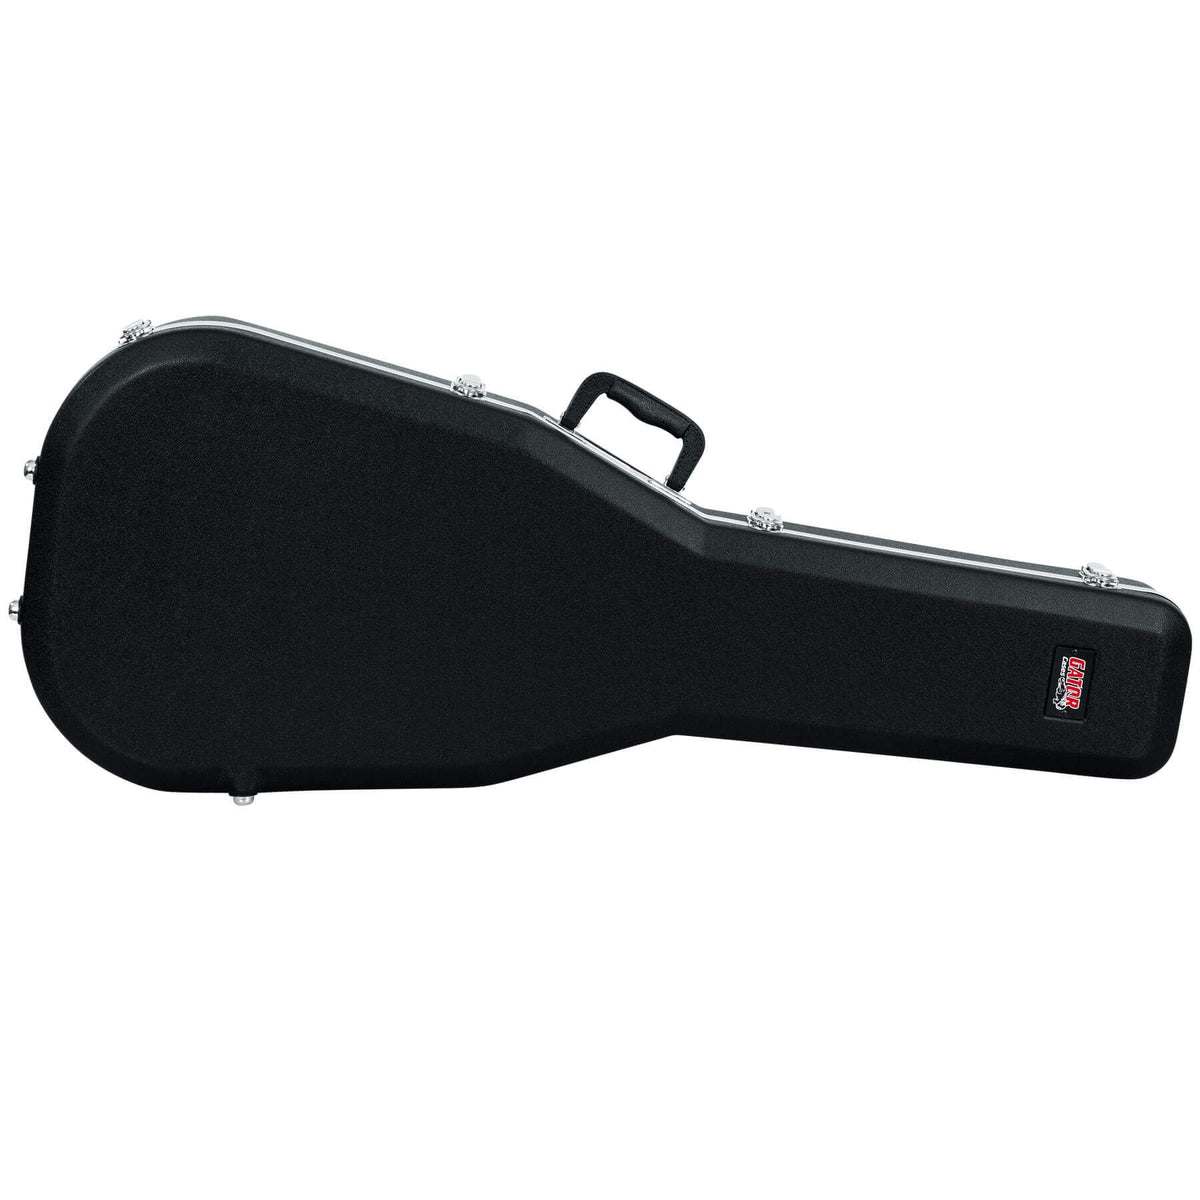 Gator Classical Guitar Case fits Seagull Maritime SWS Folk High-gloss QI